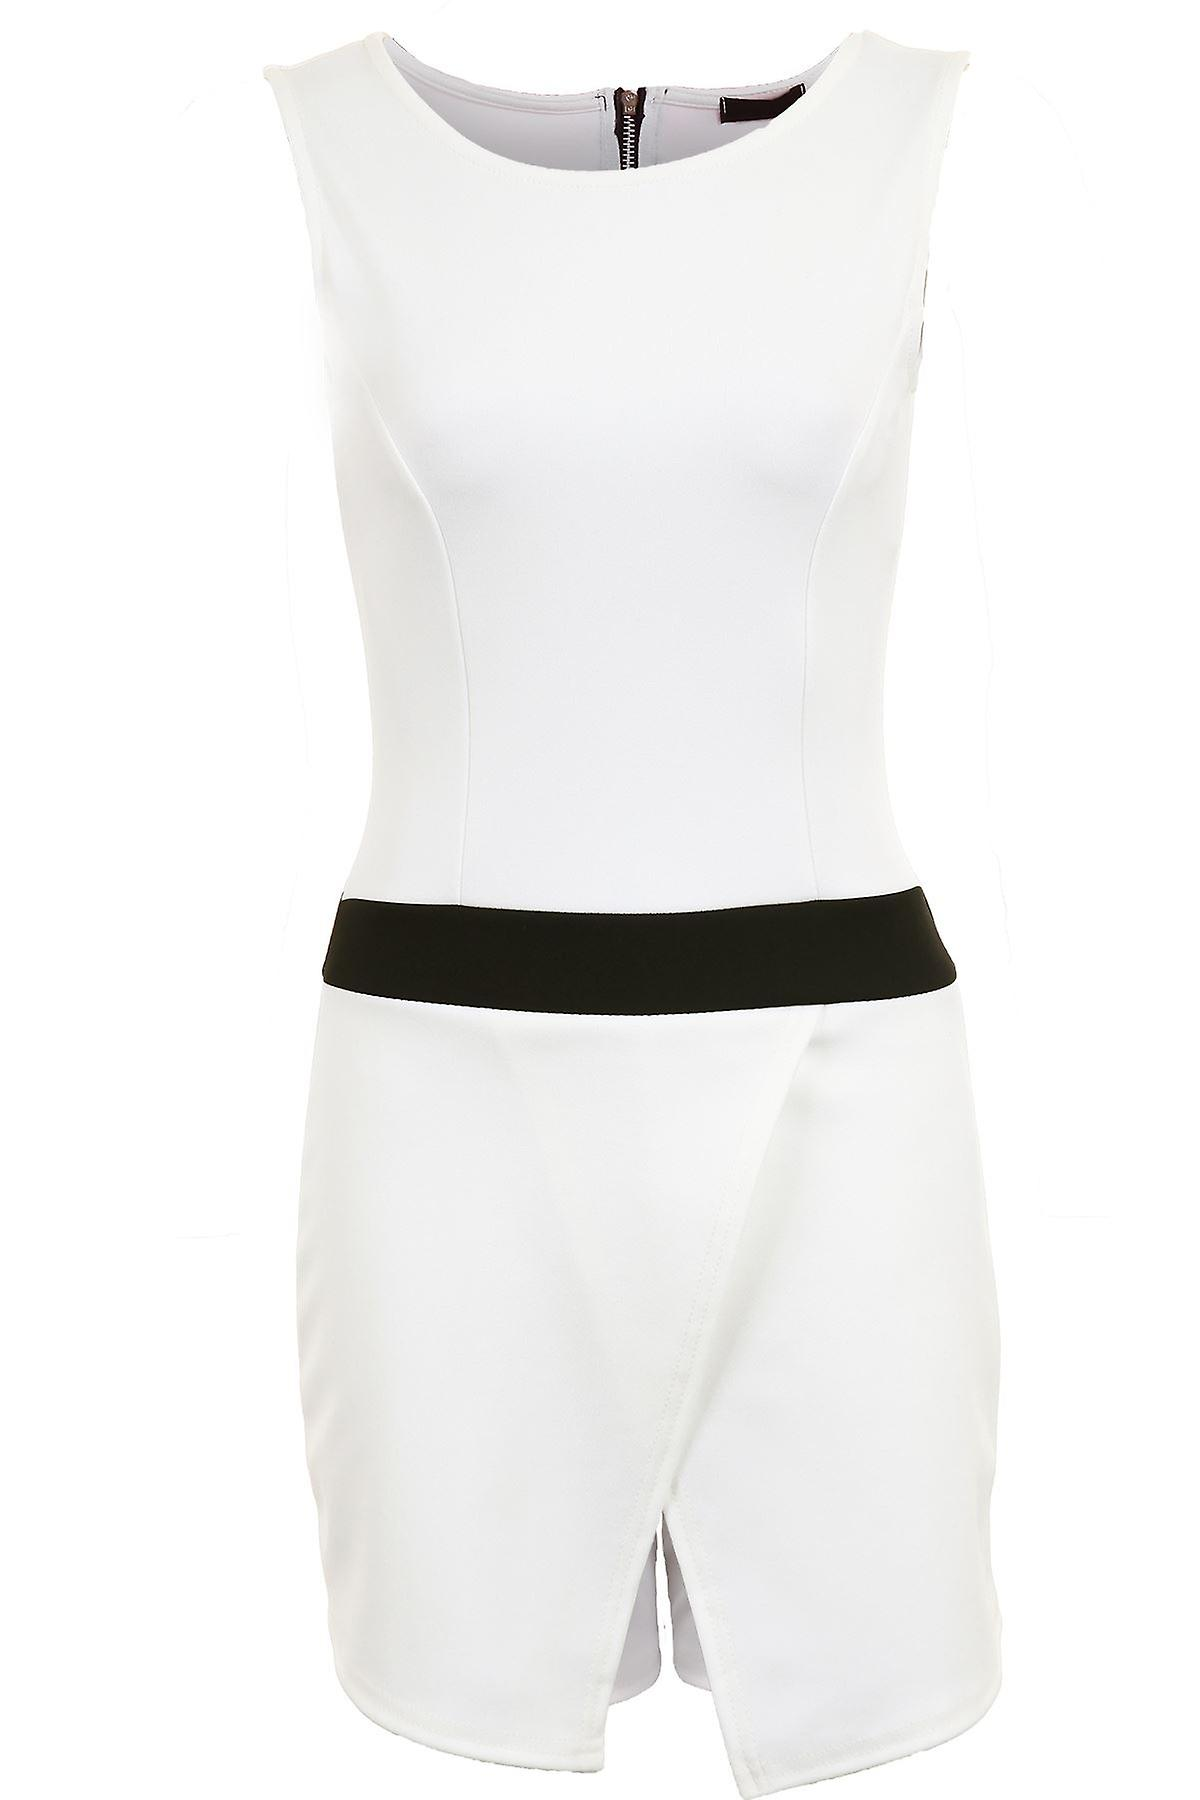 Ladies Sleeveless Round Neck Wrap Short Contrast Fitted Bodycon Women's Playsuit